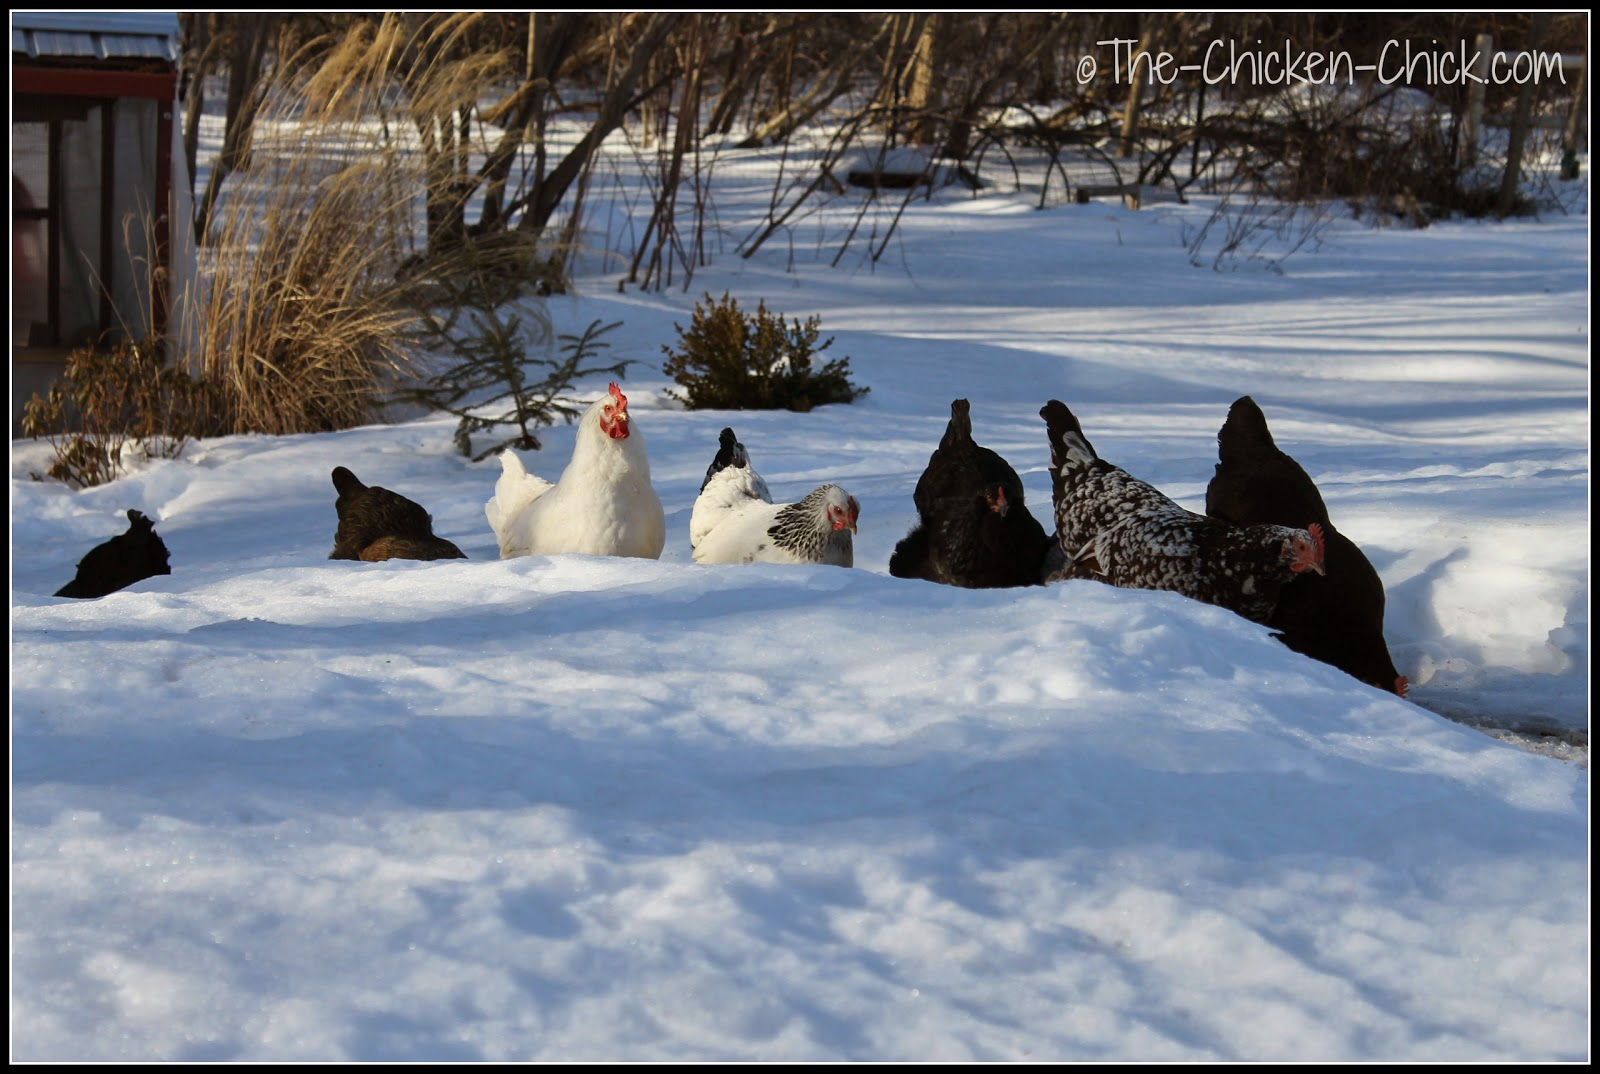 Chicken conga line.